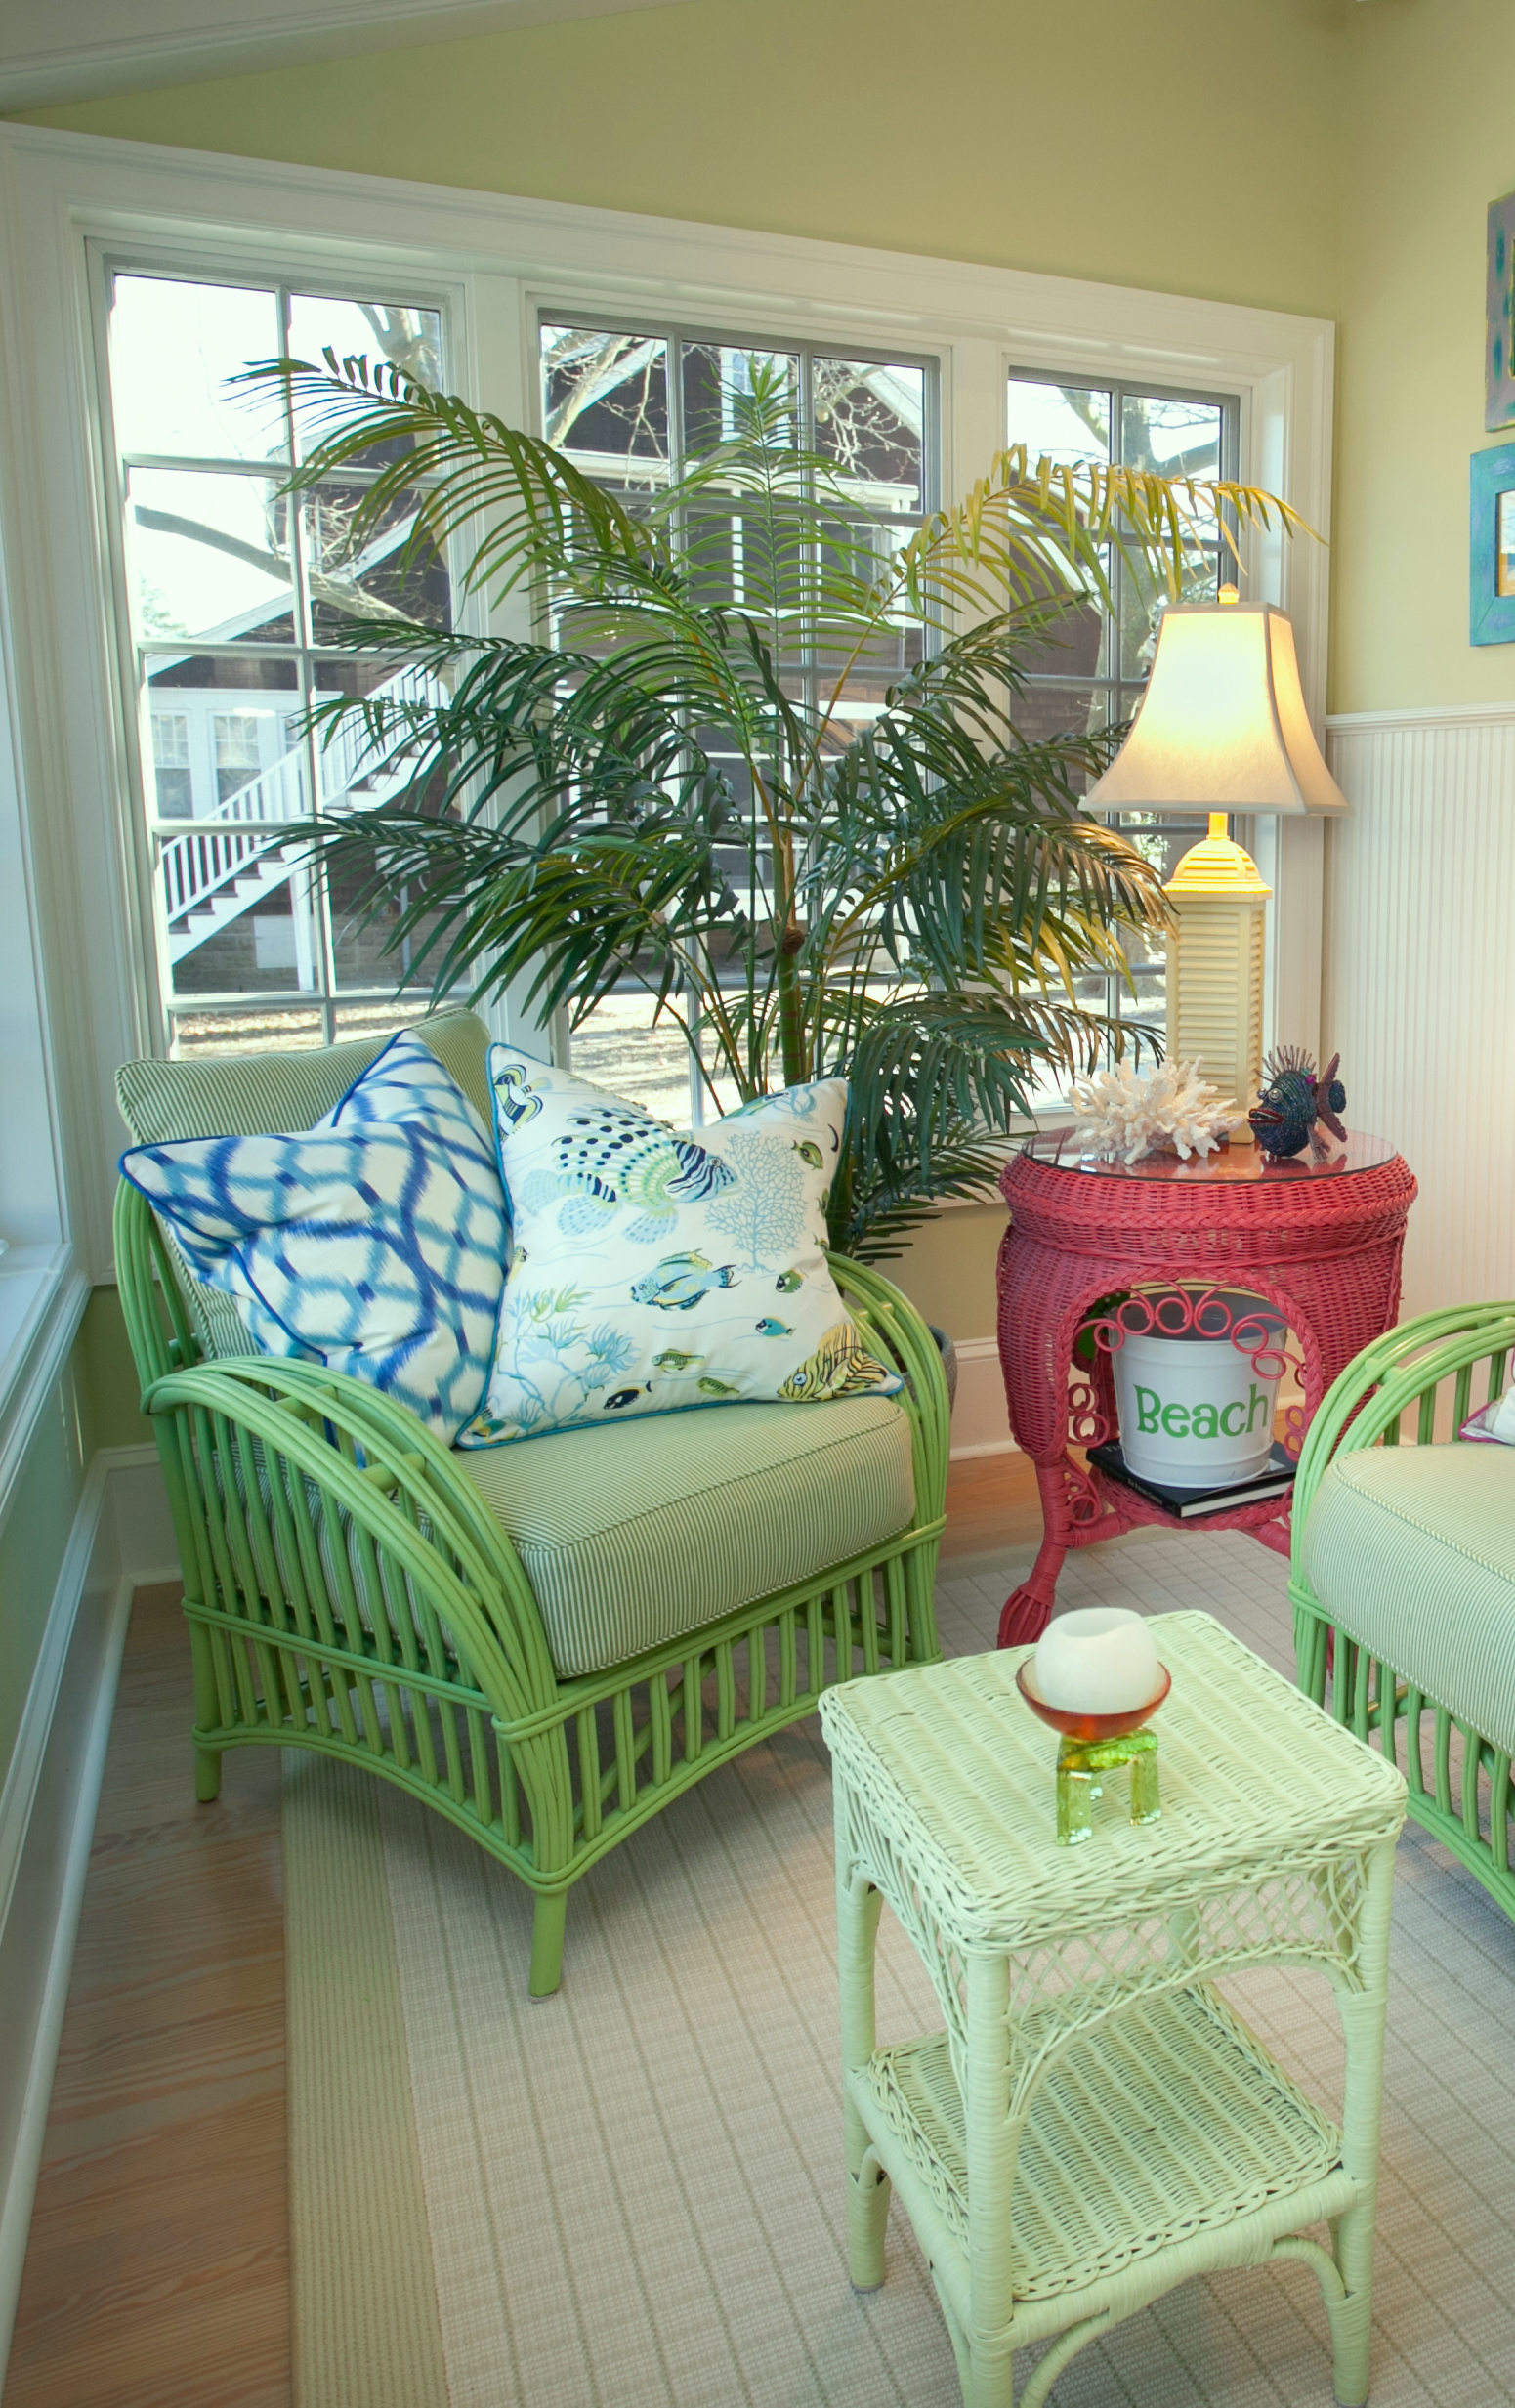 sun porch furniture ideas. Sunroom Furniture - Fresh Furniture, Sun Porch In Beach Colors Coastal Decor Ideas M